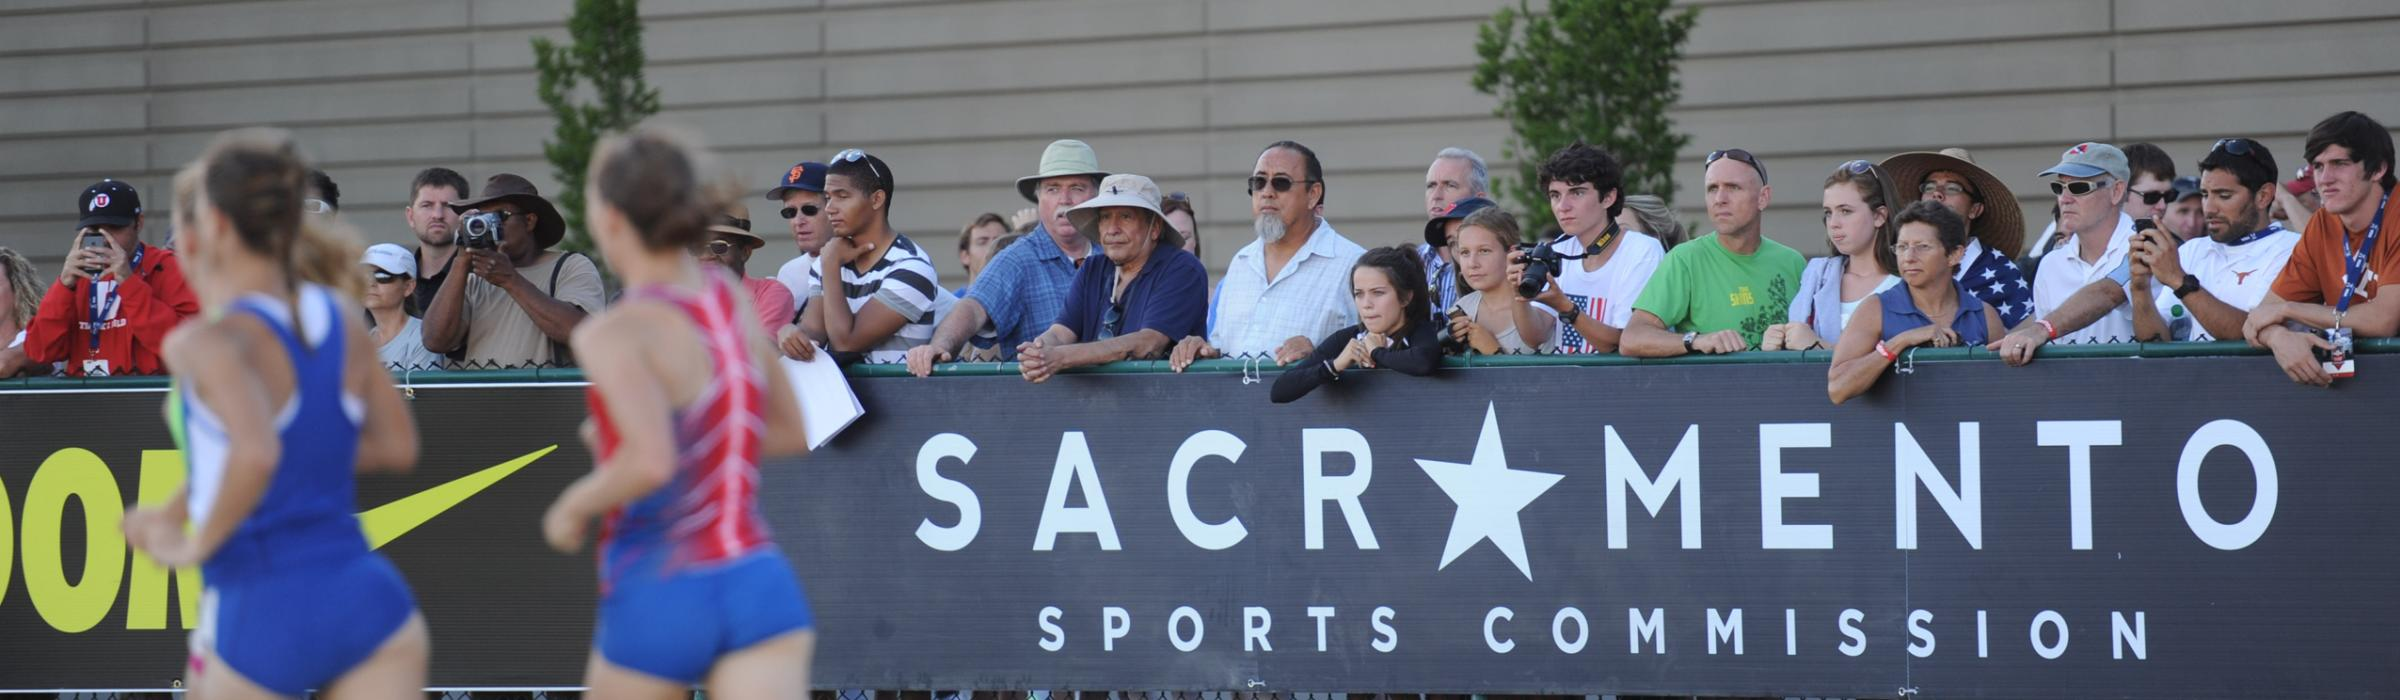 Sacramento Sports Commission sign at a track meet